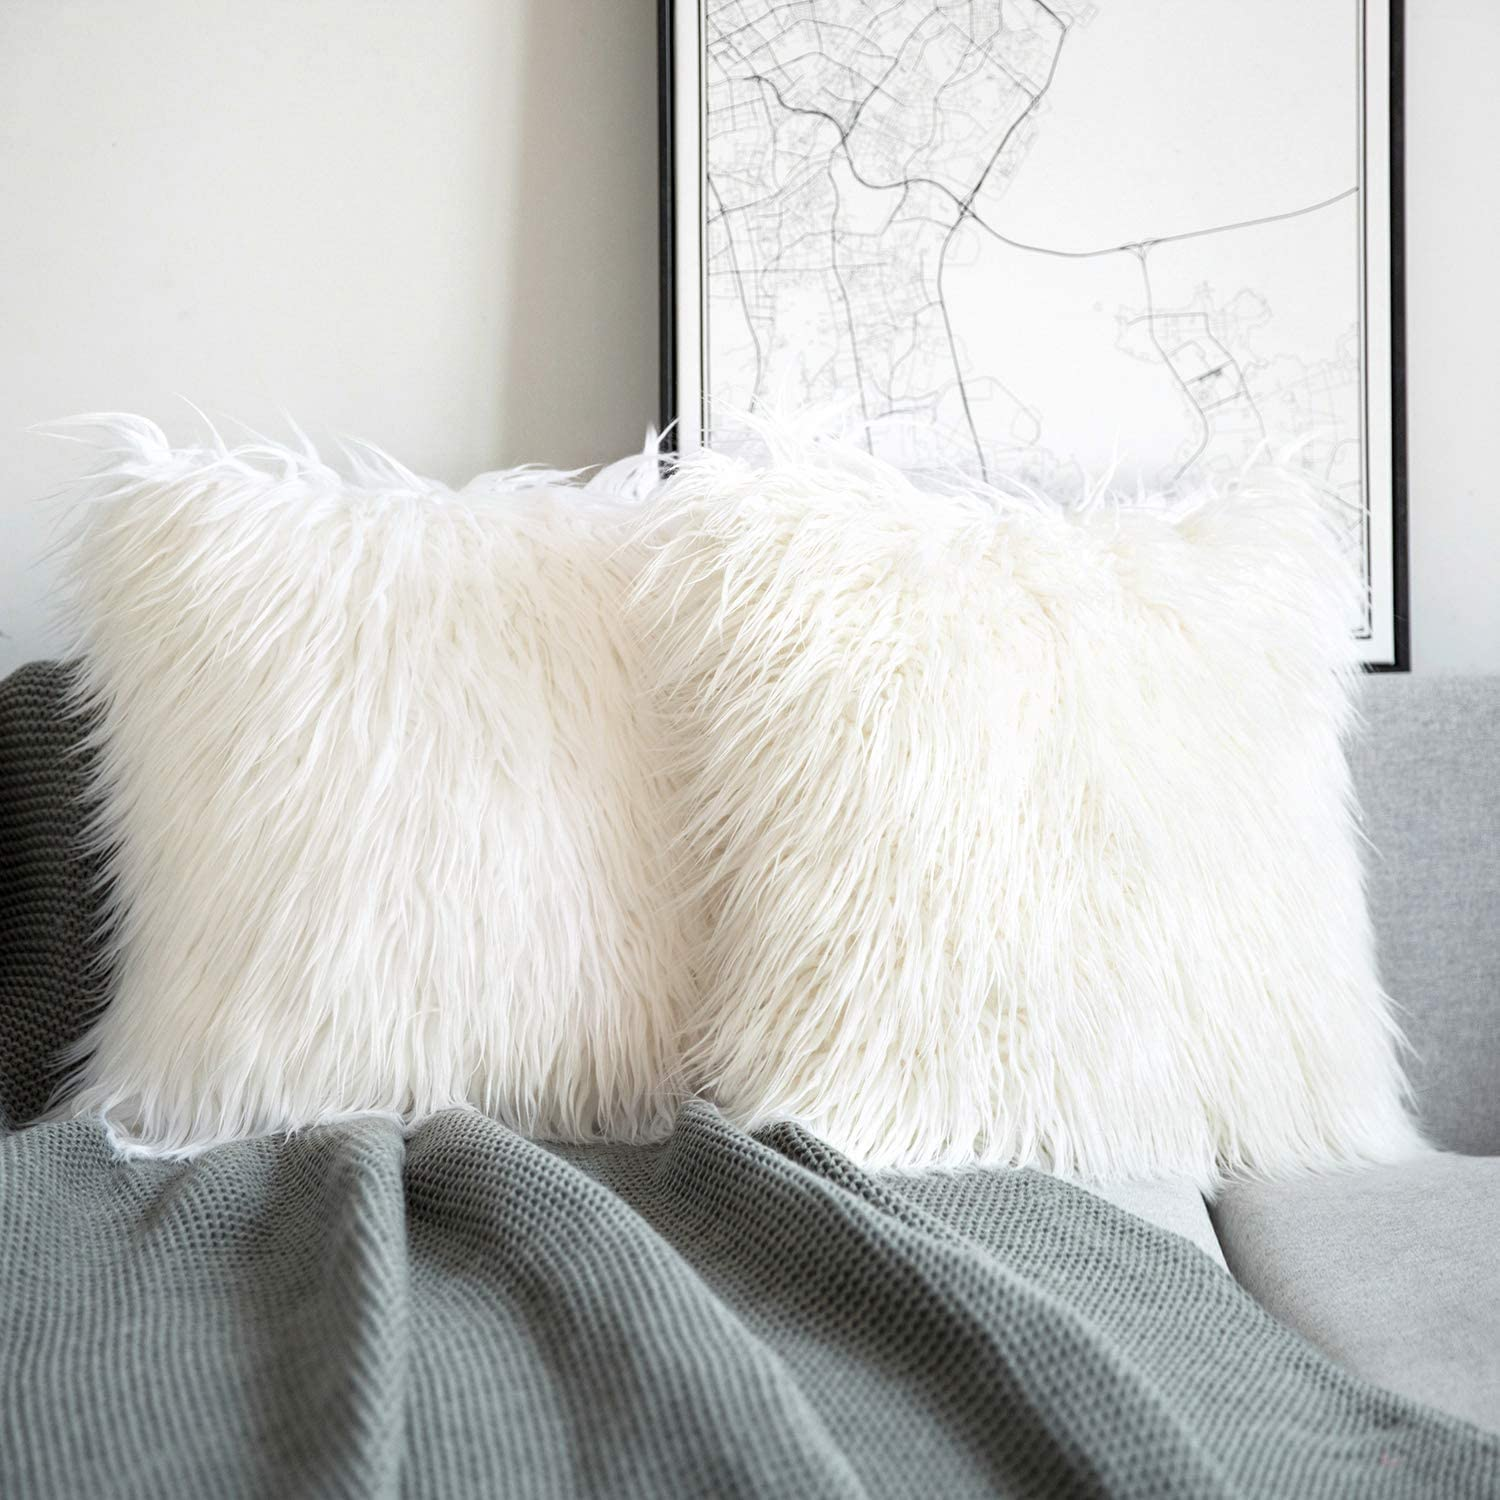 Phantoscope Pack of 2 Faux Fur Pillow Covers Throw Pillows Cases, Luxury Series Plush Cushion Case Mongolian Style, Off White 20 x 20 inches 50 x 50 cm